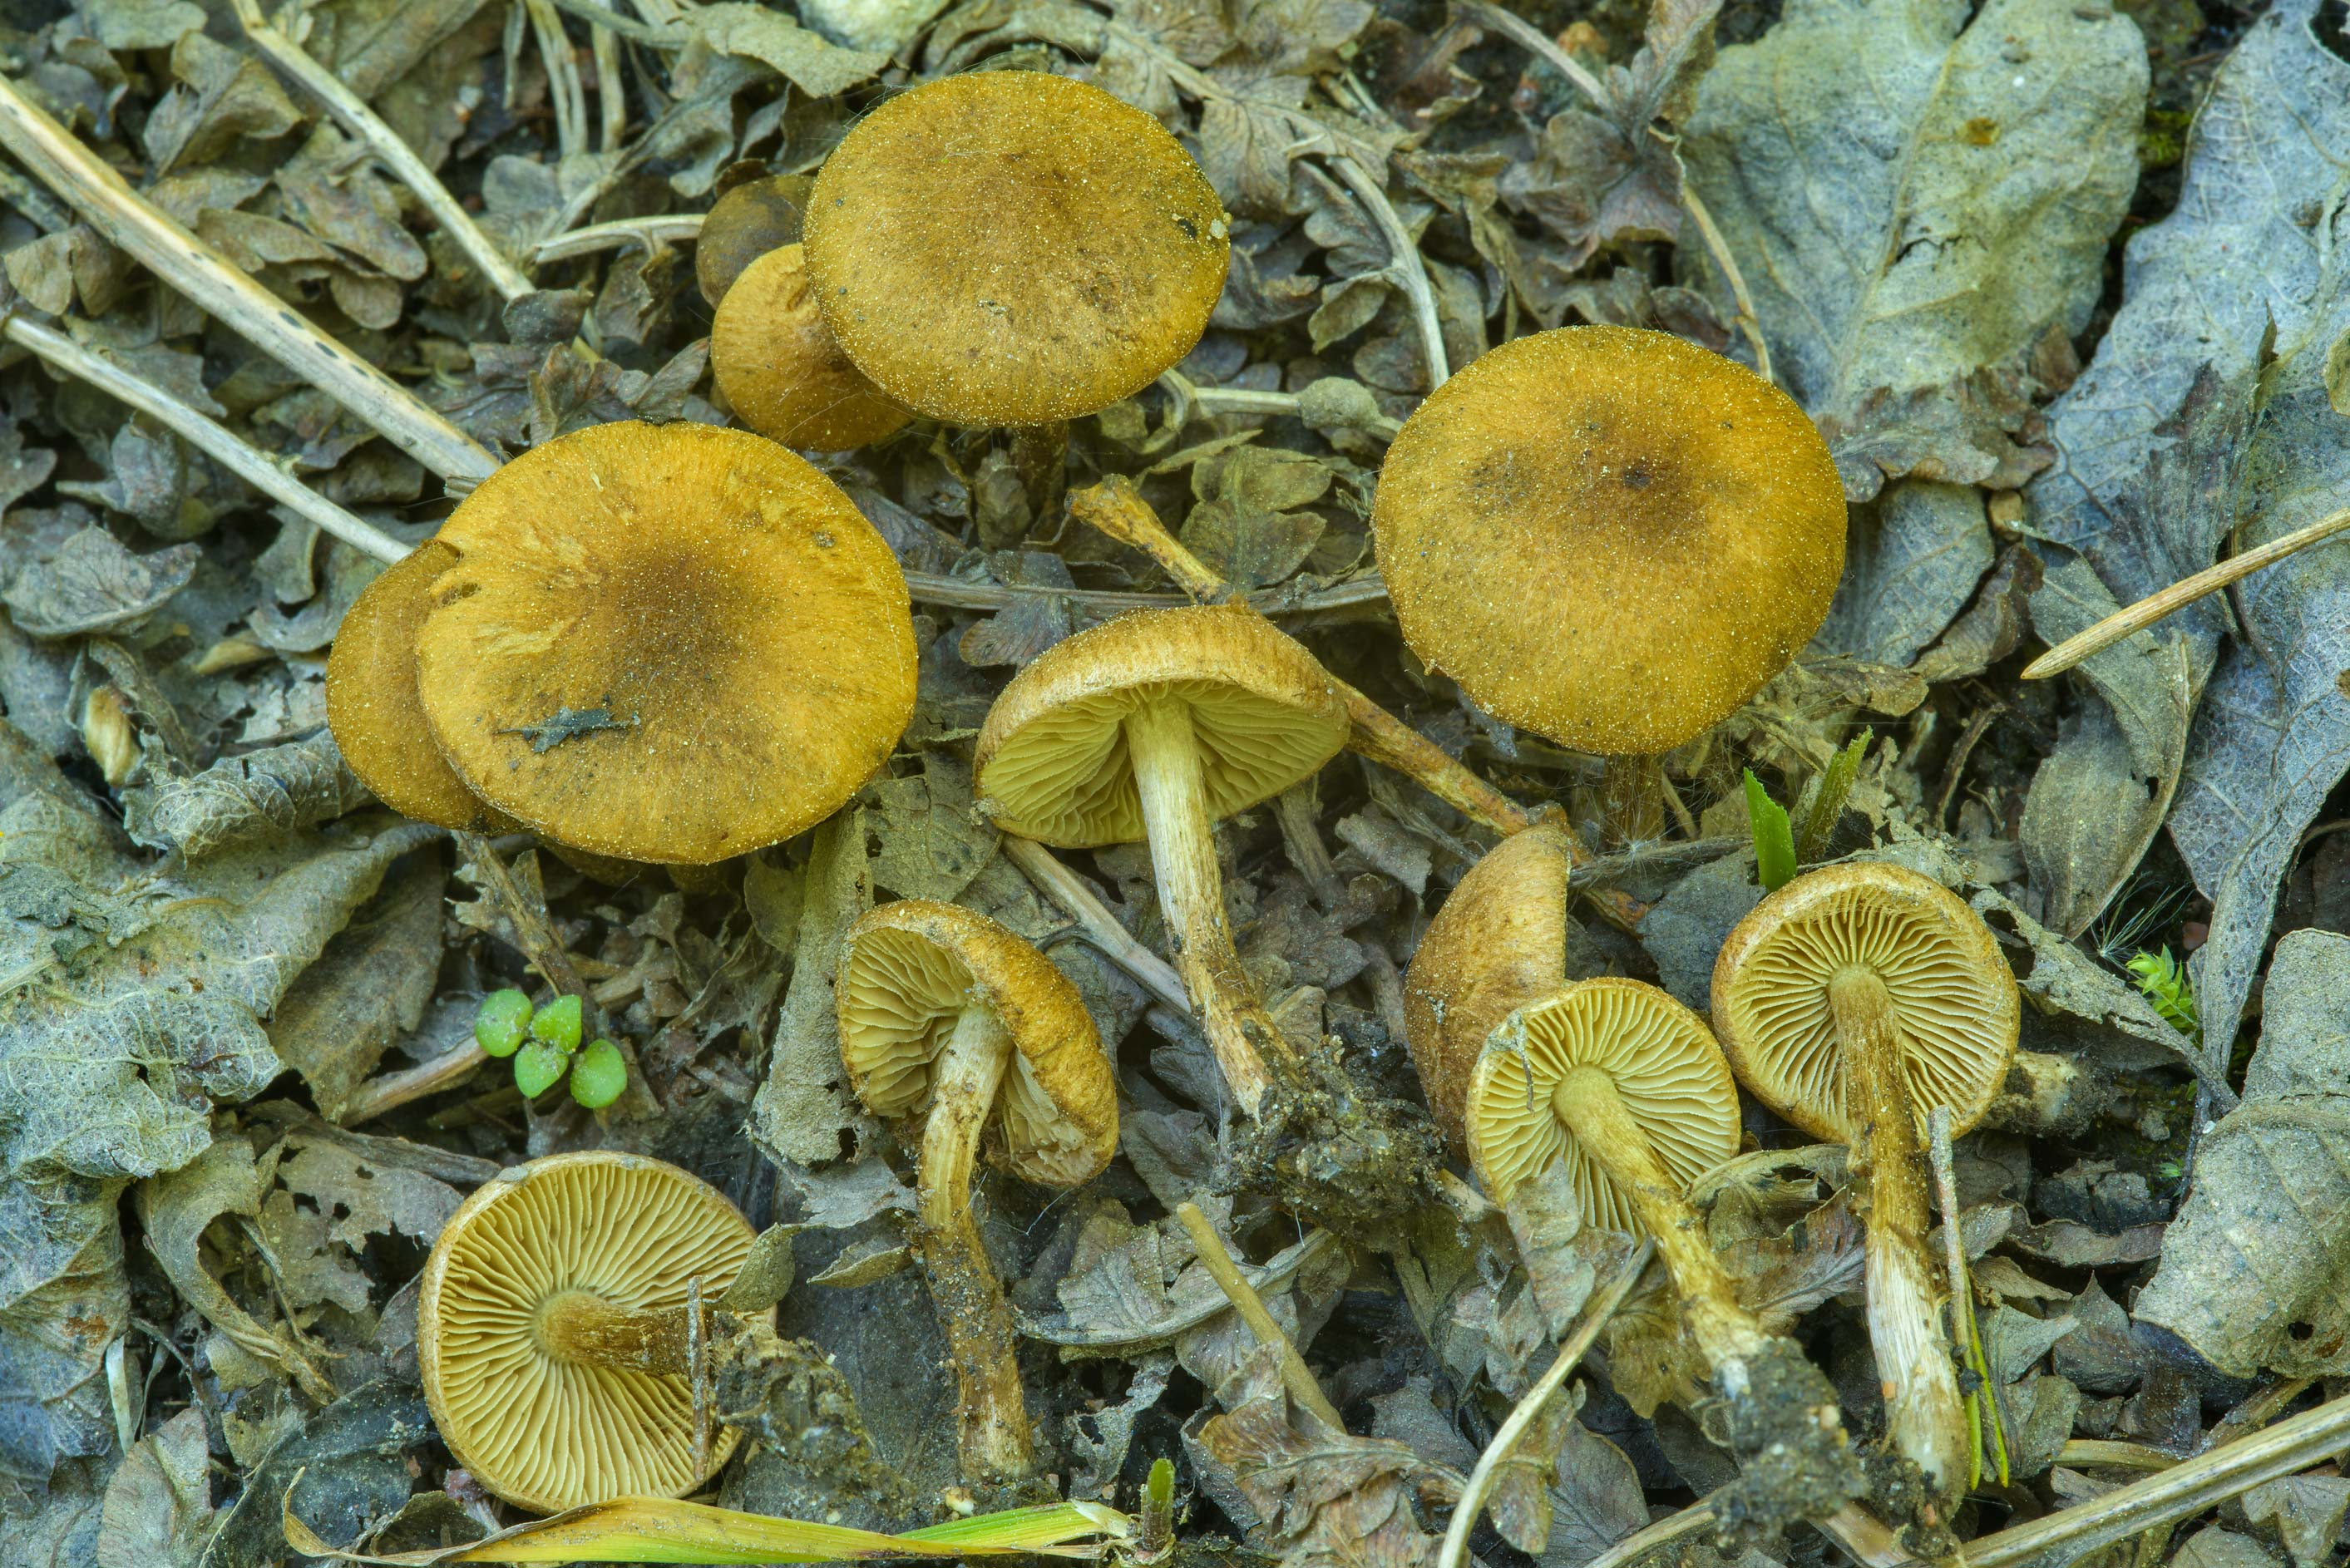 Small fibrecap (Inocybe) mushrooms on roadside...north from St.Petersburg, Russia